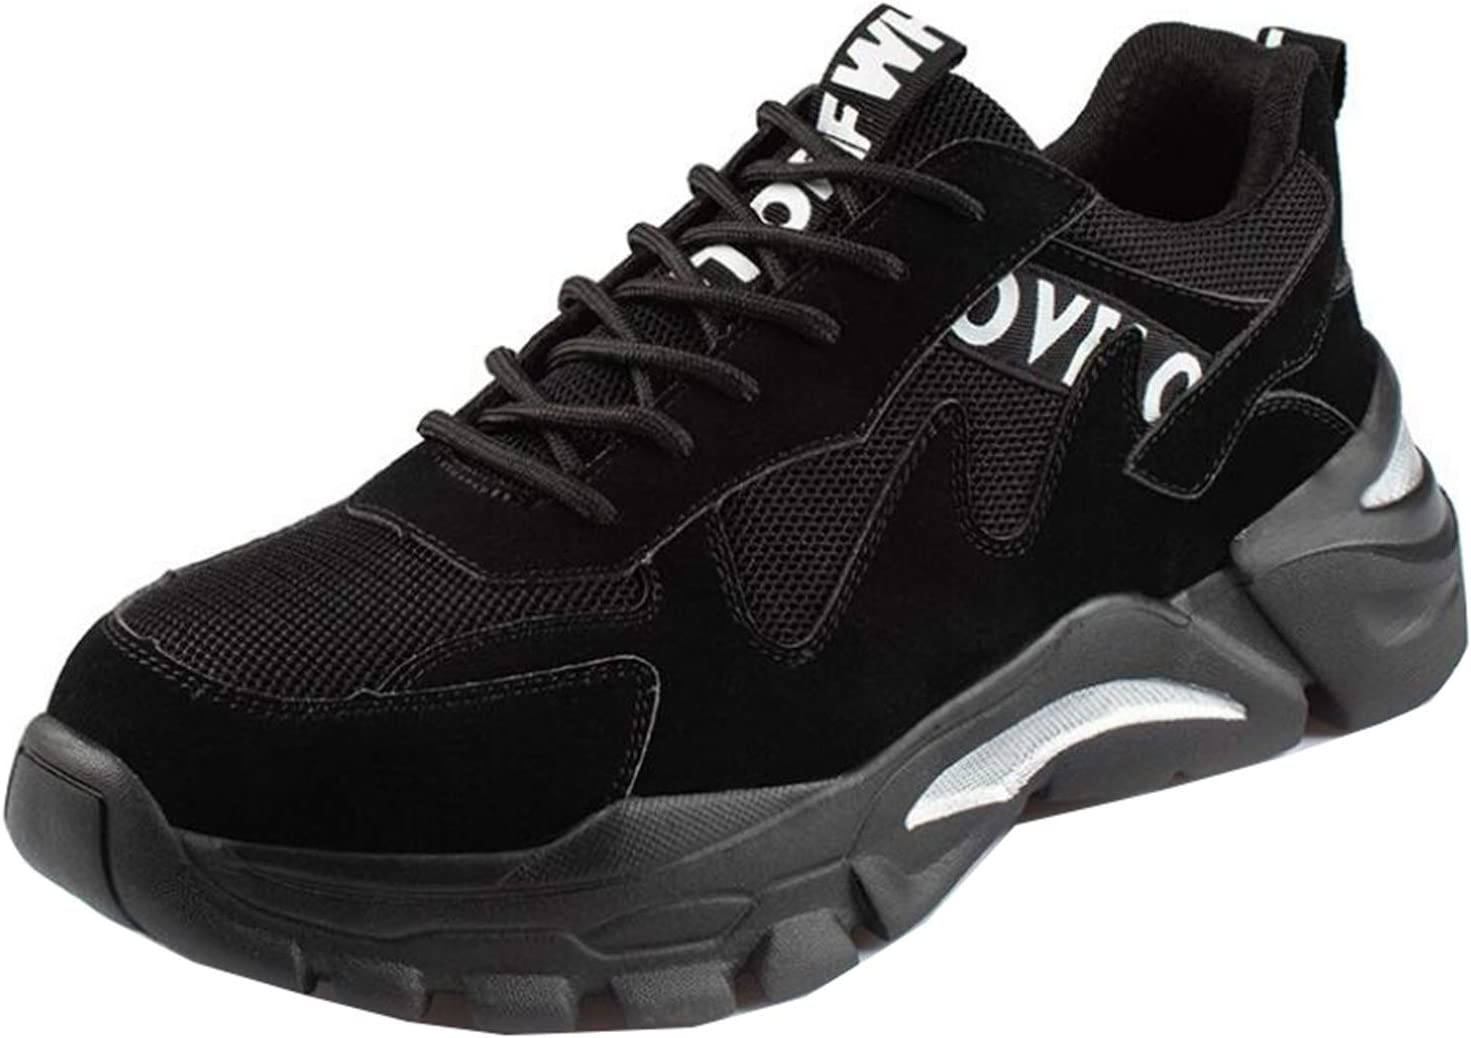 YLJXXY Men's Work Safety ShoesBreathable Indestructible Construction Steel Toe Footwear Industrial Lightweight Breathable Boots,Black,43